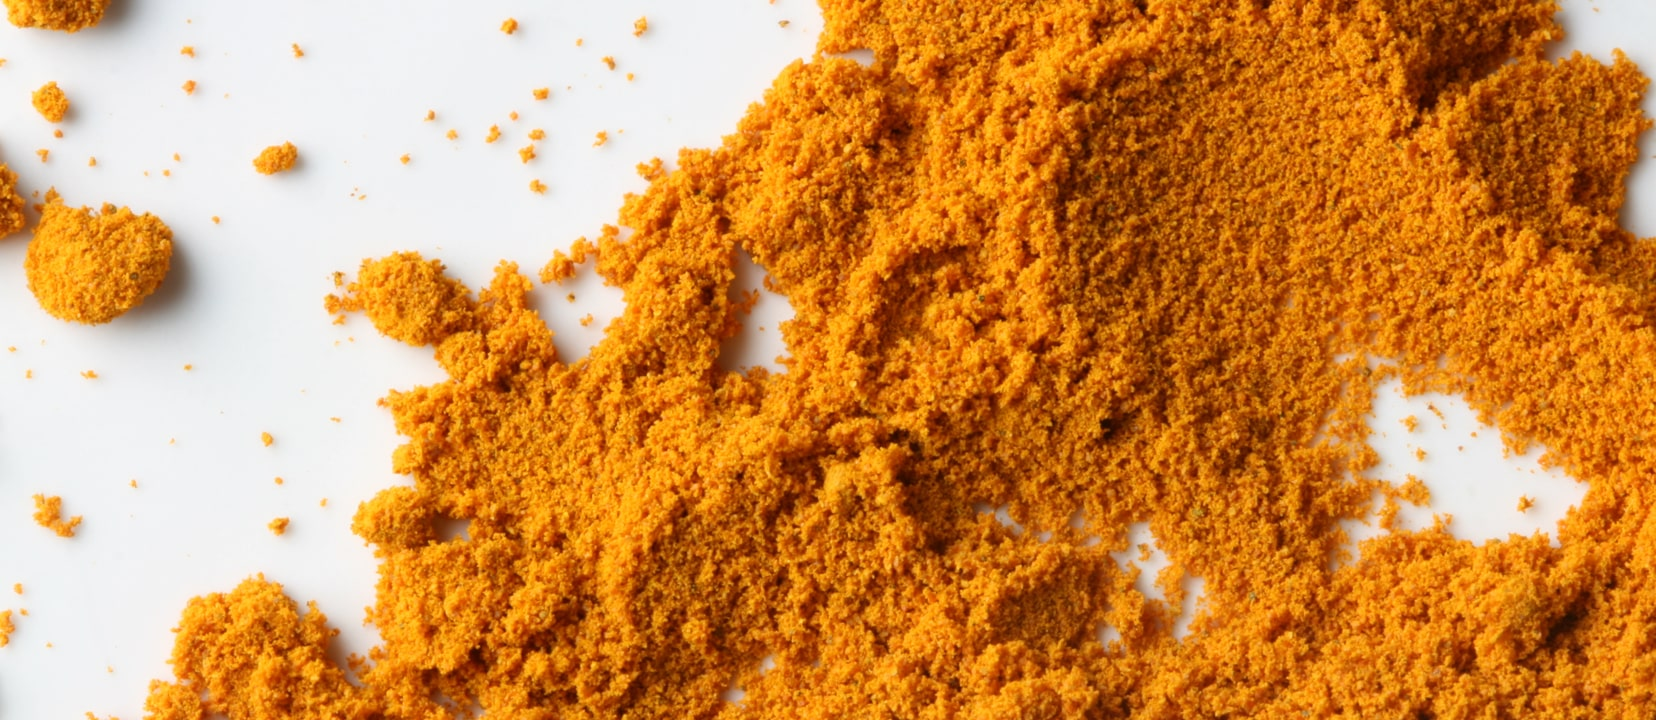 Treating Alzheimer's with Turmeric